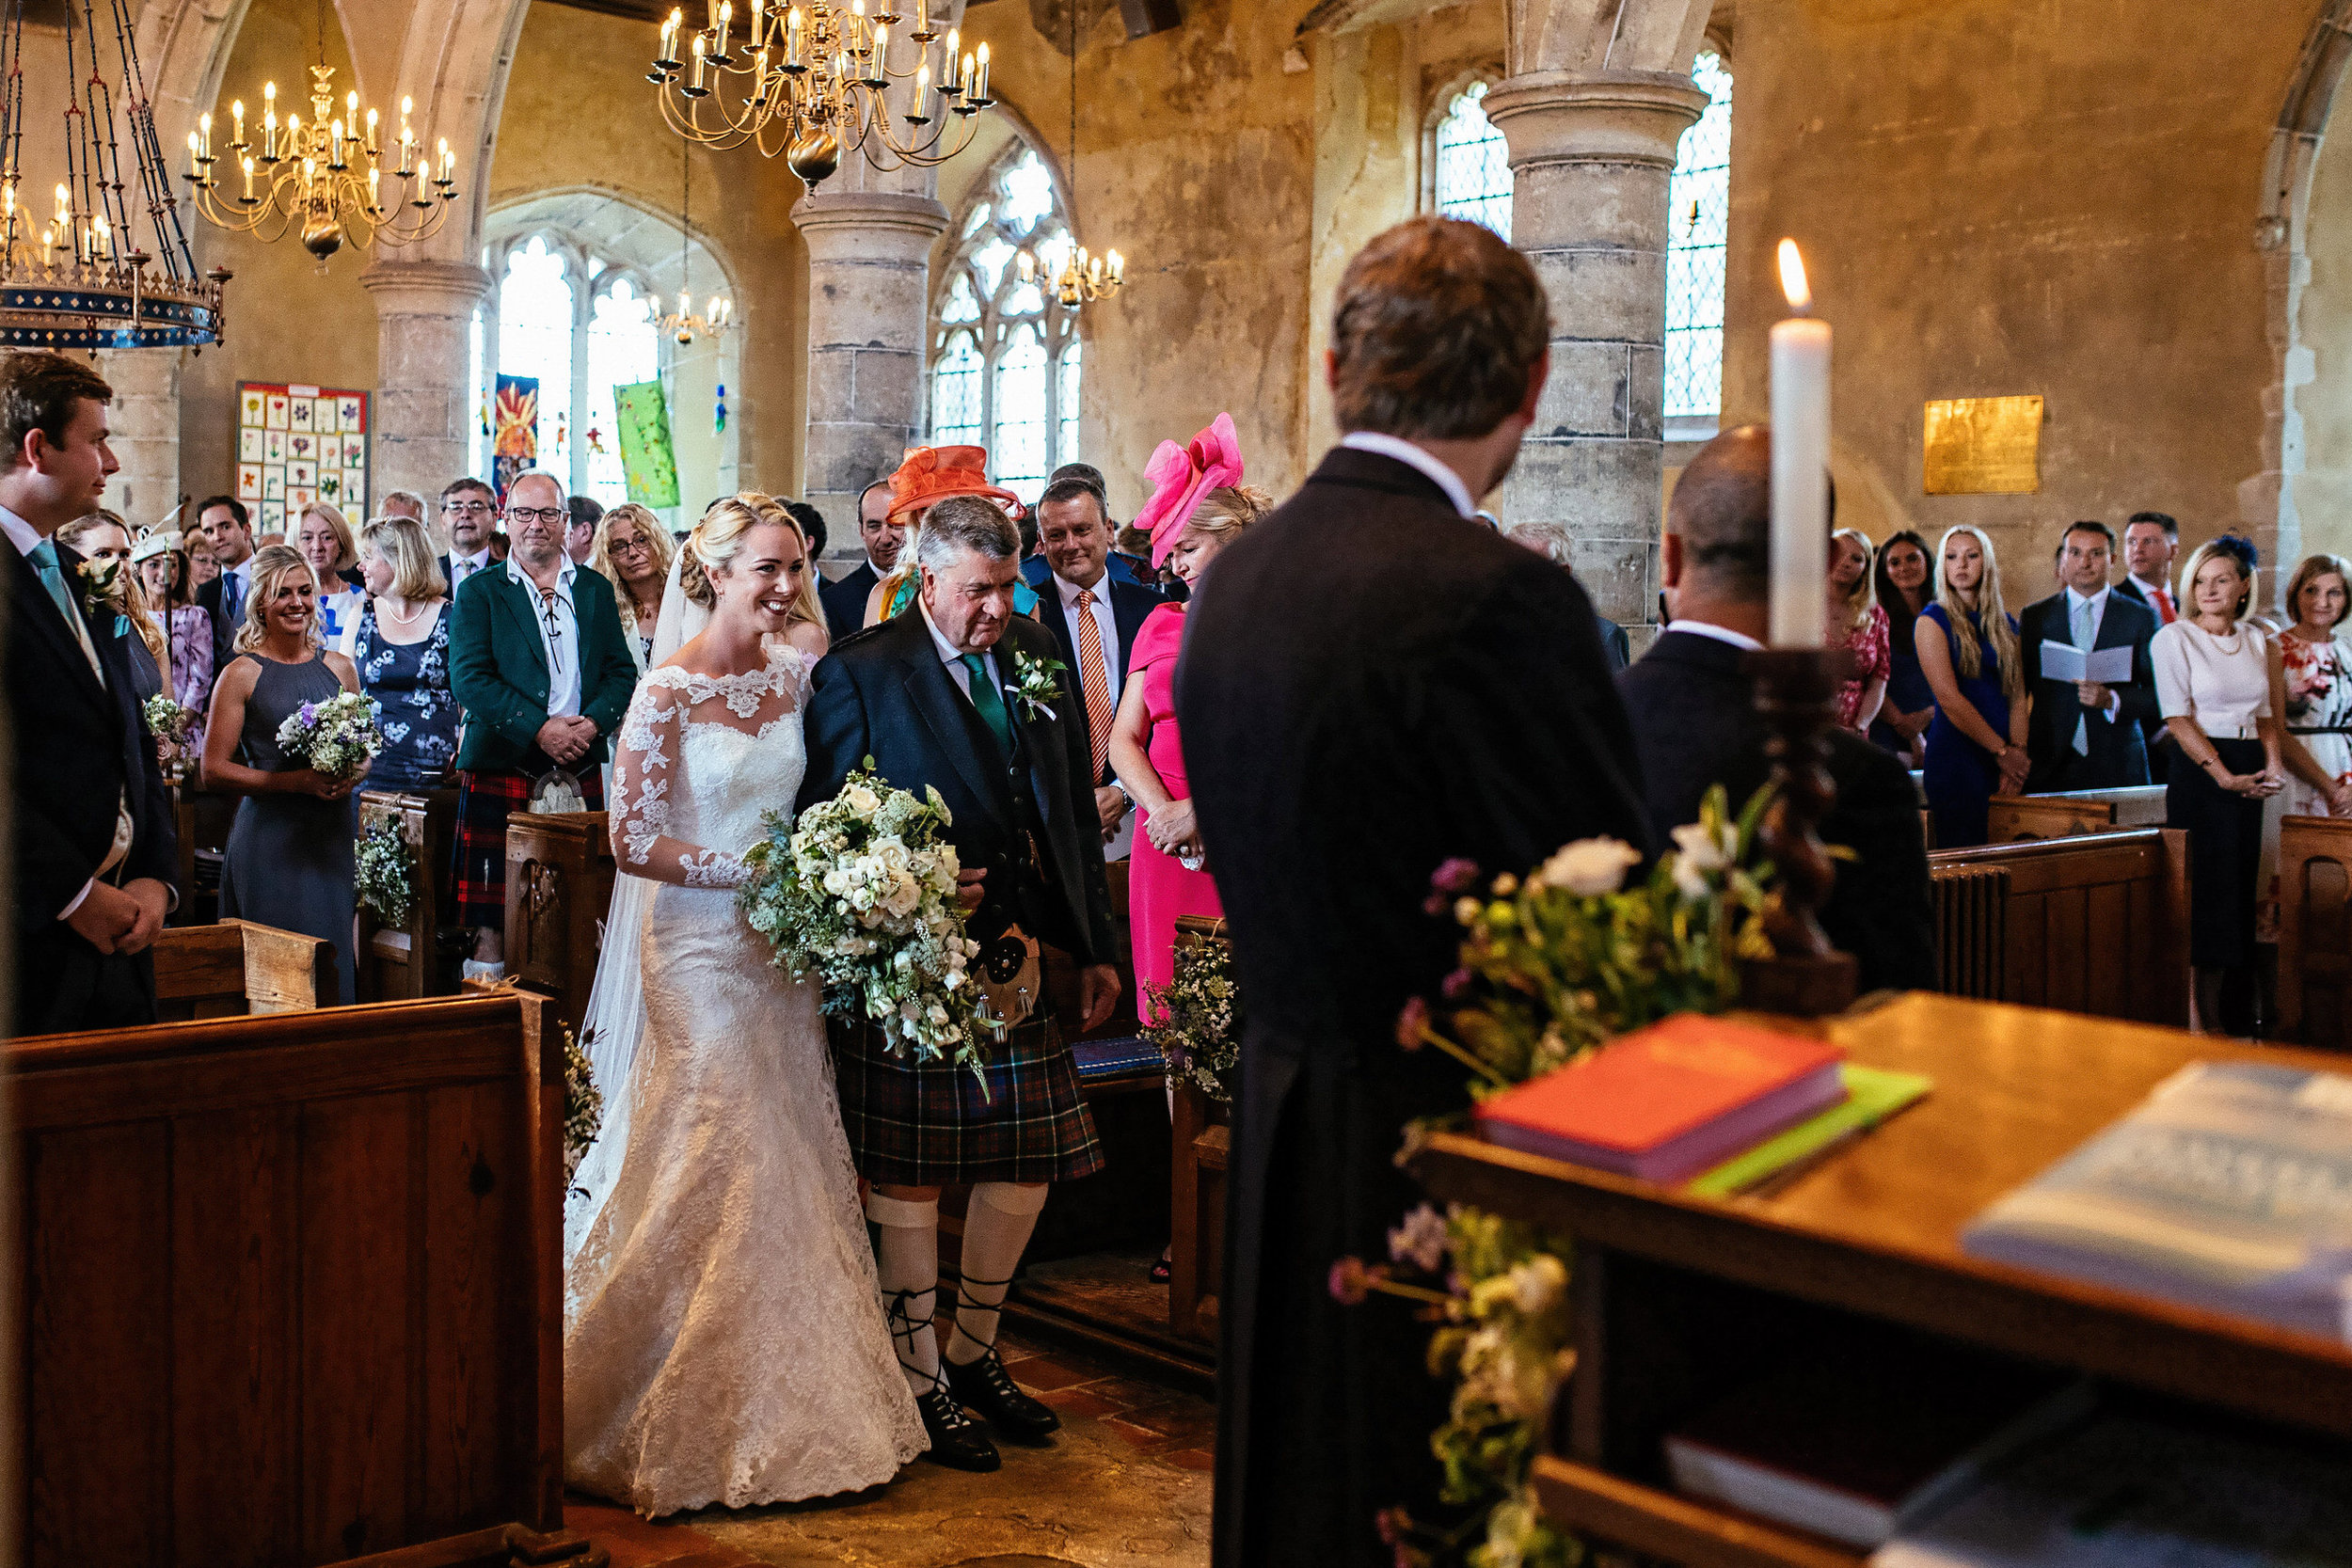 Biddenden Wedding Photographer 0046.jpg